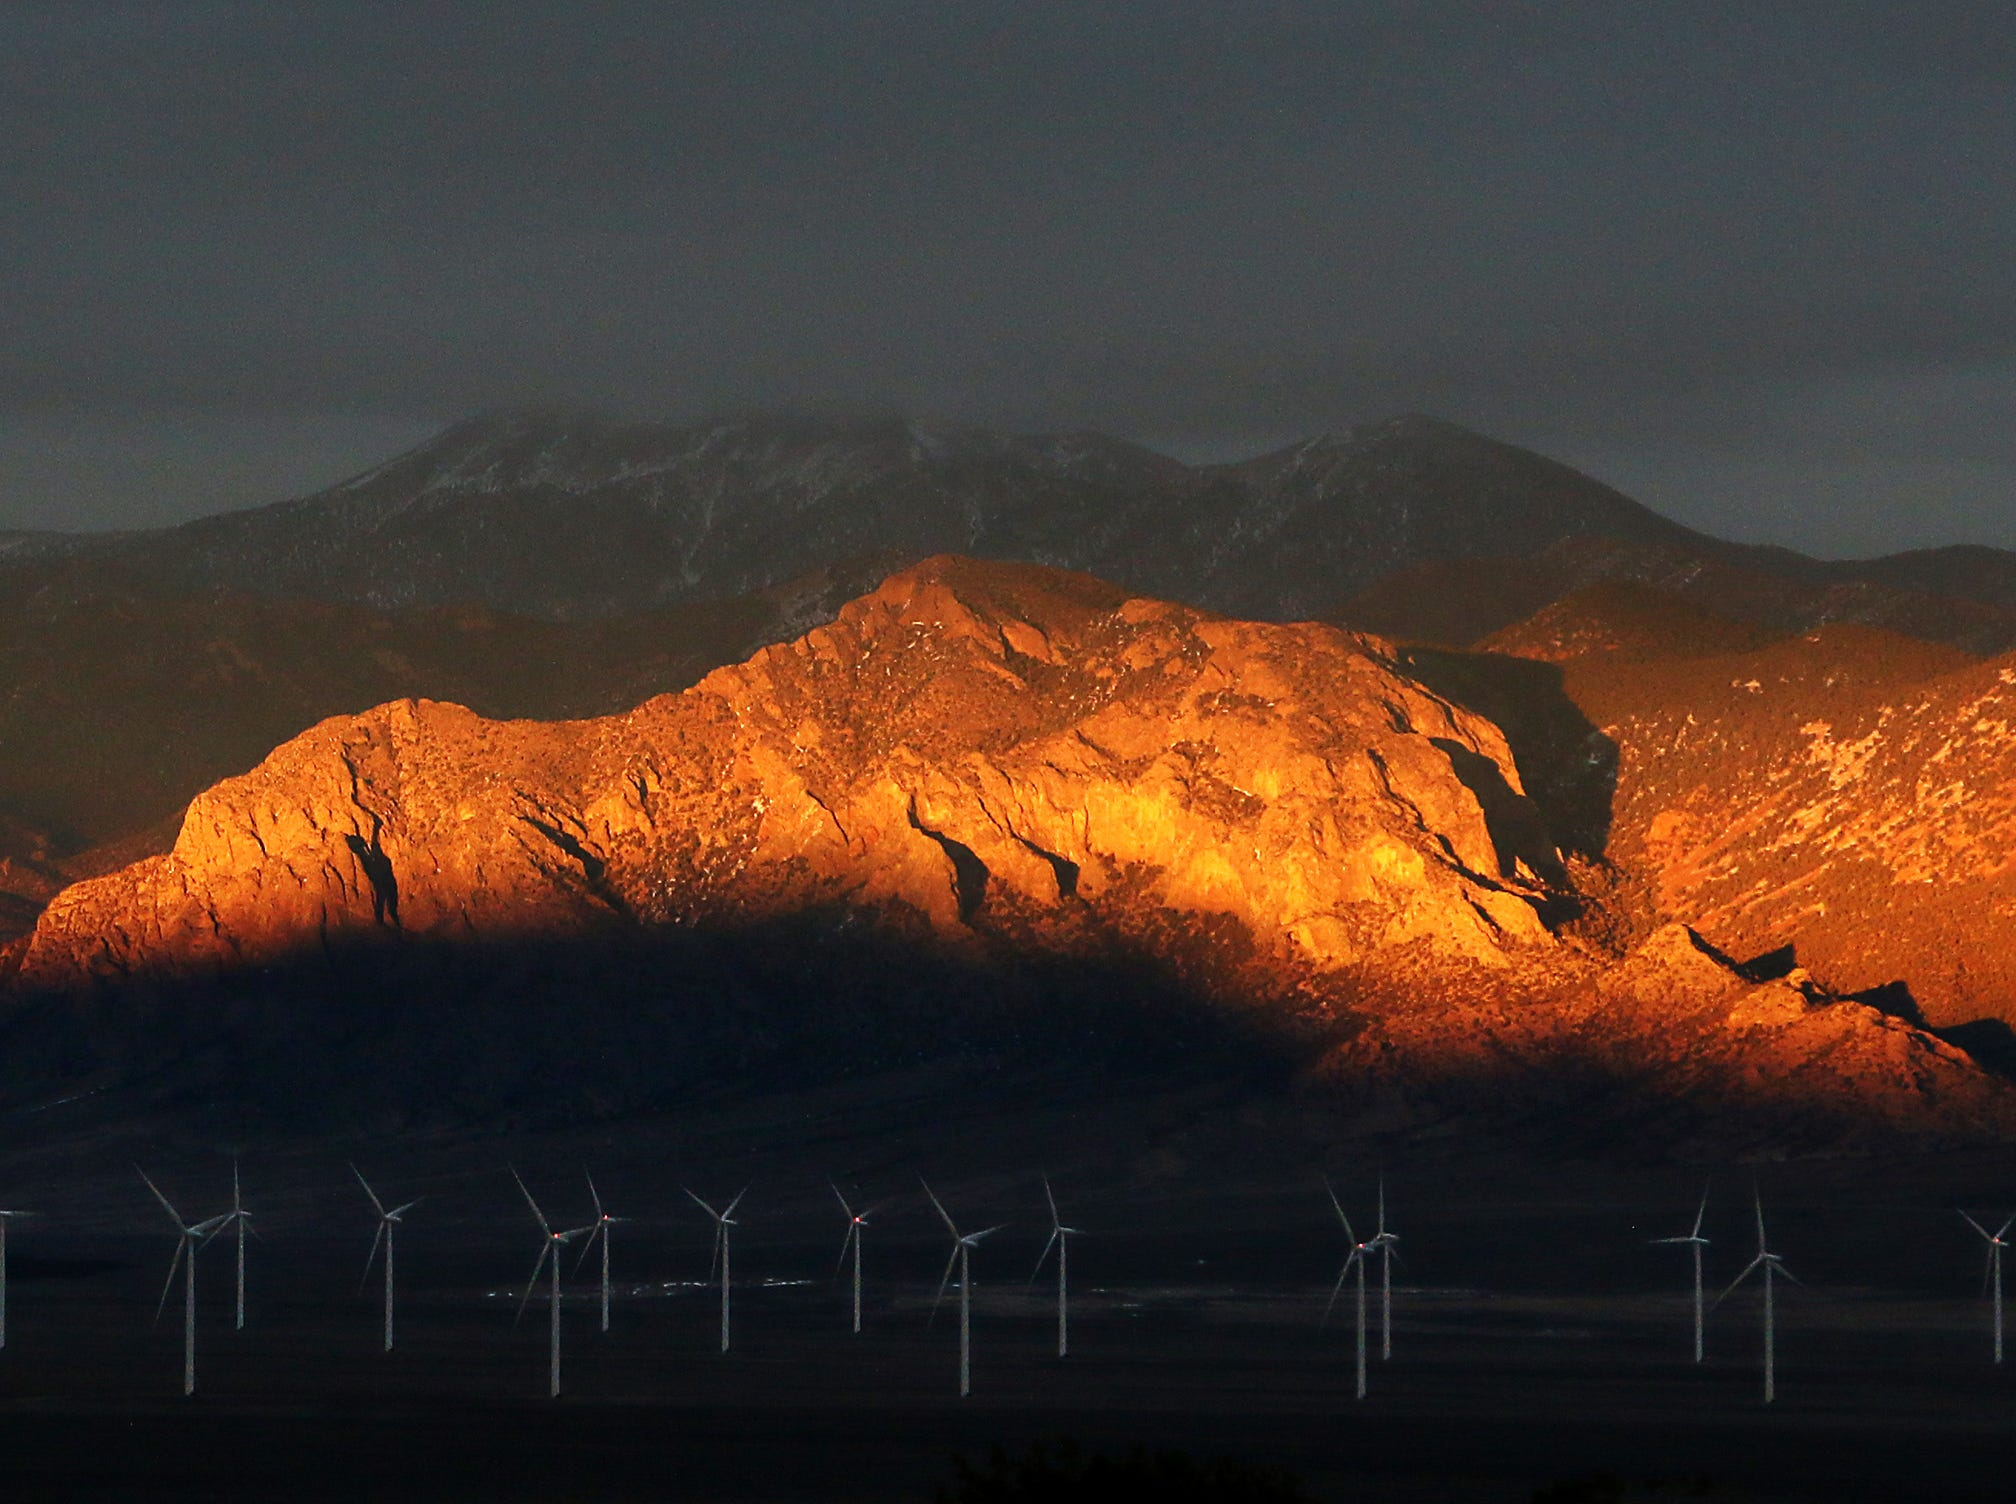 Late evening light is seen illuminating the mountains above the Spring Valley Wind Farm in eastern Nevada on Feb. 1, 2018.